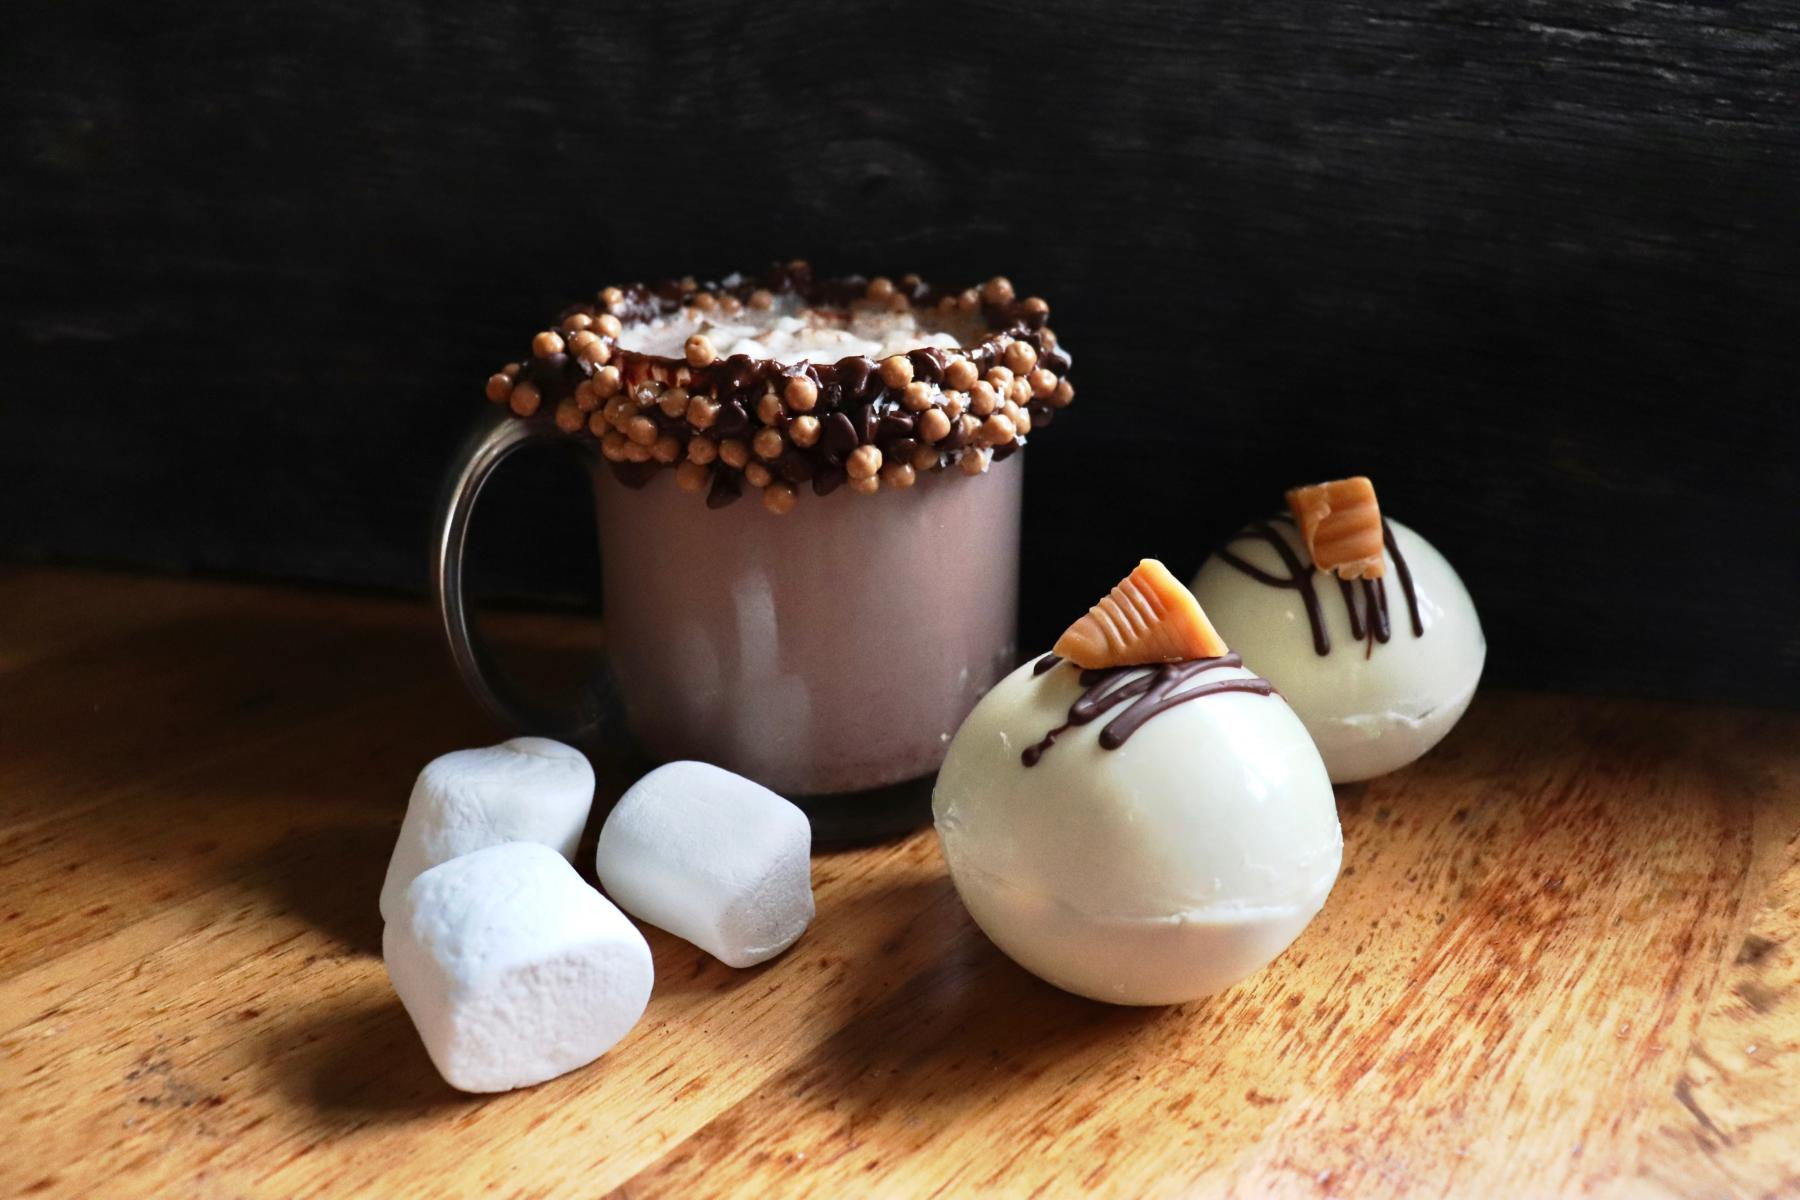 Hot Chocolate bomb from BomboBar